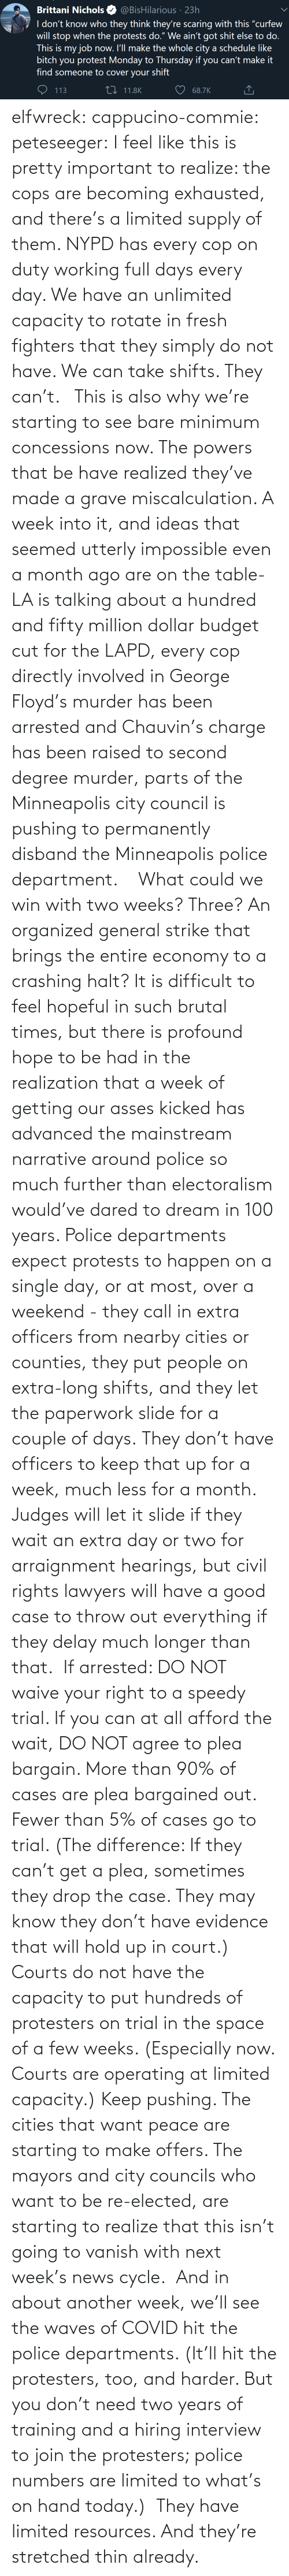 powers: elfwreck:  cappucino-commie:  peteseeger: I feel like this is pretty important to realize: the cops are becoming exhausted, and there's a limited supply of them. NYPD has every cop on duty working full days every day. We have an unlimited capacity to rotate in fresh fighters that they simply do not have. We can take shifts. They can't.   This is also why we're starting to see bare minimum concessions now. The powers that be have realized they've made a grave miscalculation. A week into it, and ideas that seemed utterly impossible even a month ago are on the table- LA is talking about a hundred and fifty million dollar budget cut for the LAPD, every cop directly involved in George Floyd's murder has been arrested and Chauvin's charge has been raised to second degree murder, parts of the Minneapolis city council is pushing to permanently disband the Minneapolis police department.  What could we win with two weeks? Three? An organized general strike that brings the entire economy to a crashing halt? It is difficult to feel hopeful in such brutal times, but there is profound hope to be had in the realization that a week of getting our asses kicked has advanced the mainstream narrative around police so much further than electoralism would've dared to dream in 100 years.   Police departments expect protests to happen on a single day, or at most, over a weekend - they call in extra officers from nearby cities or counties, they put people on extra-long shifts, and they let the paperwork slide for a couple of days. They don't have officers to keep that up for a week, much less for a month. Judges will let it slide if they wait an extra day or two for arraignment hearings, but civil rights lawyers will have a good case to throw out everything if they delay much longer than that. If arrested: DO NOT waive your right to a speedy trial. If you can at all afford the wait, DO NOT agree to plea bargain. More than 90% of cases are plea bargained out. Fewer than 5% of cases g